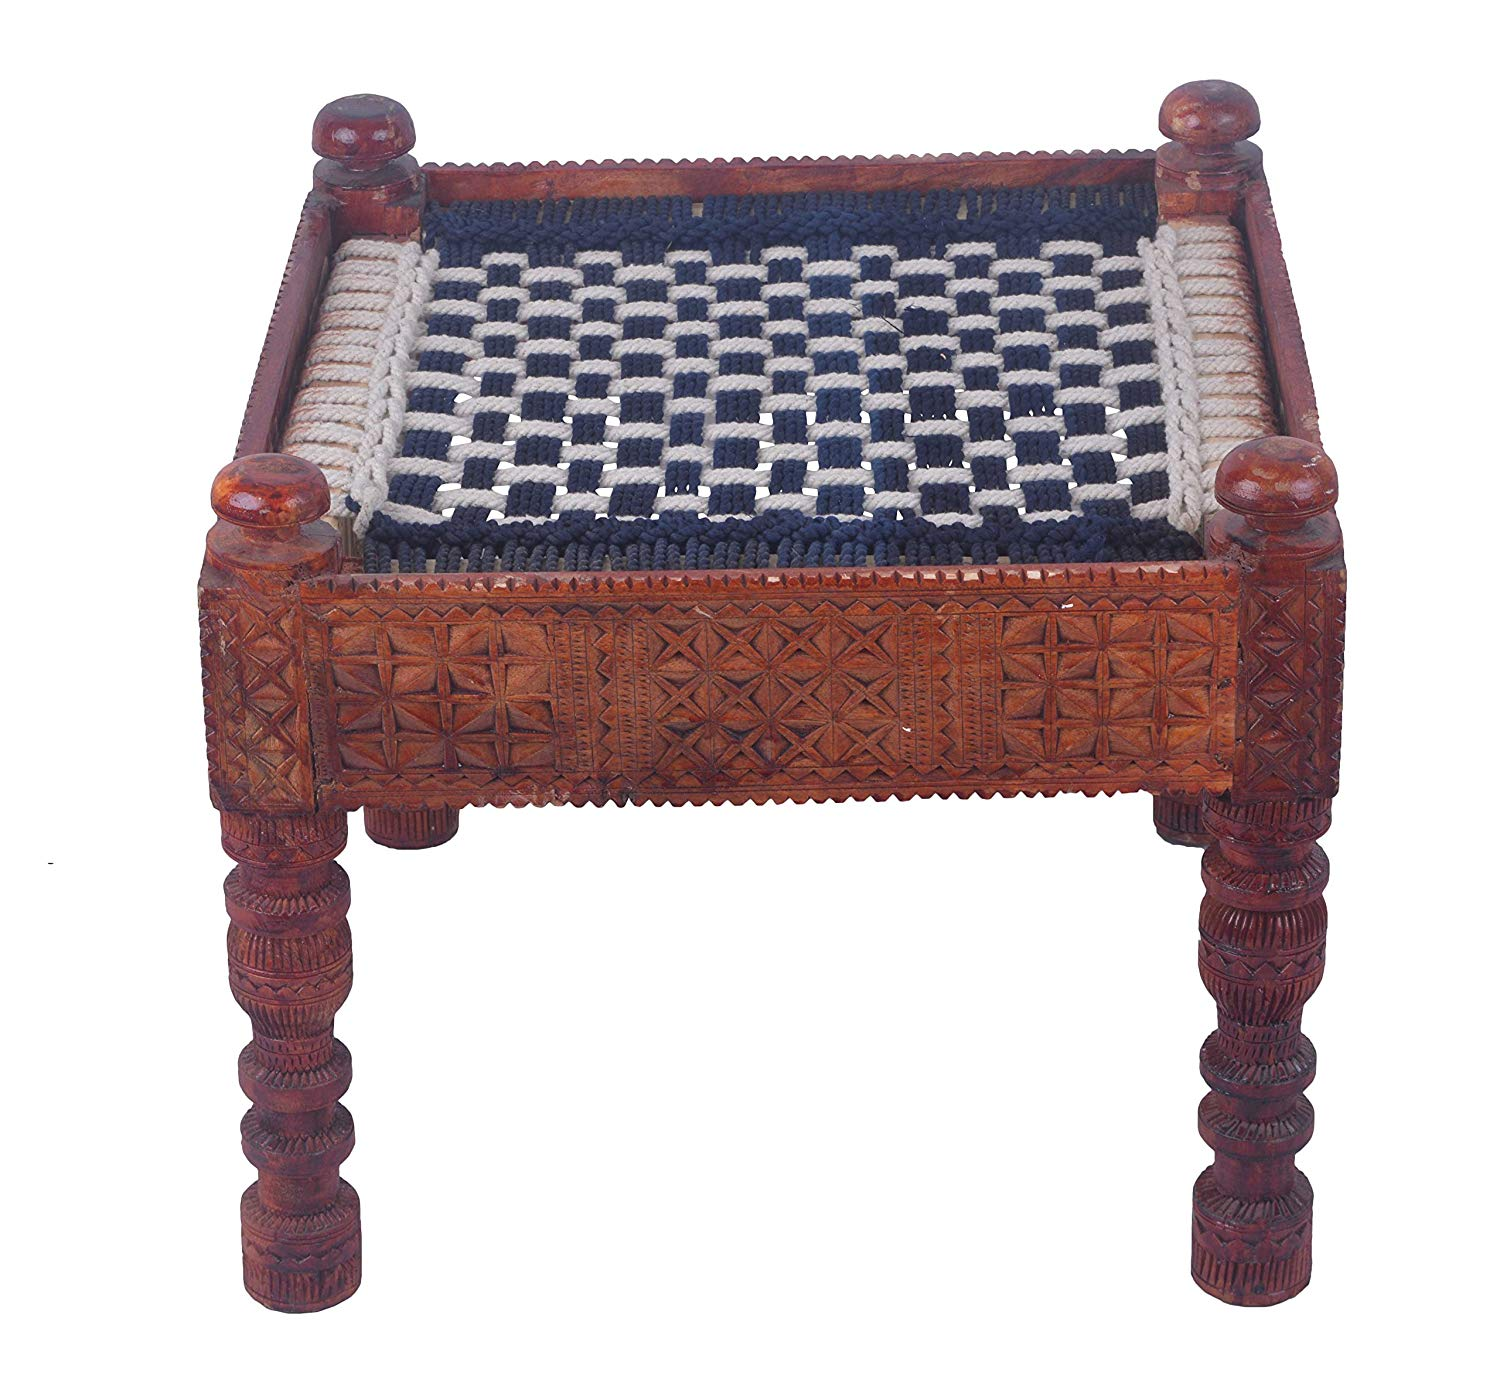 IRA Wooden Handcrafted Chowki Khatli Stool - IRA Furniture